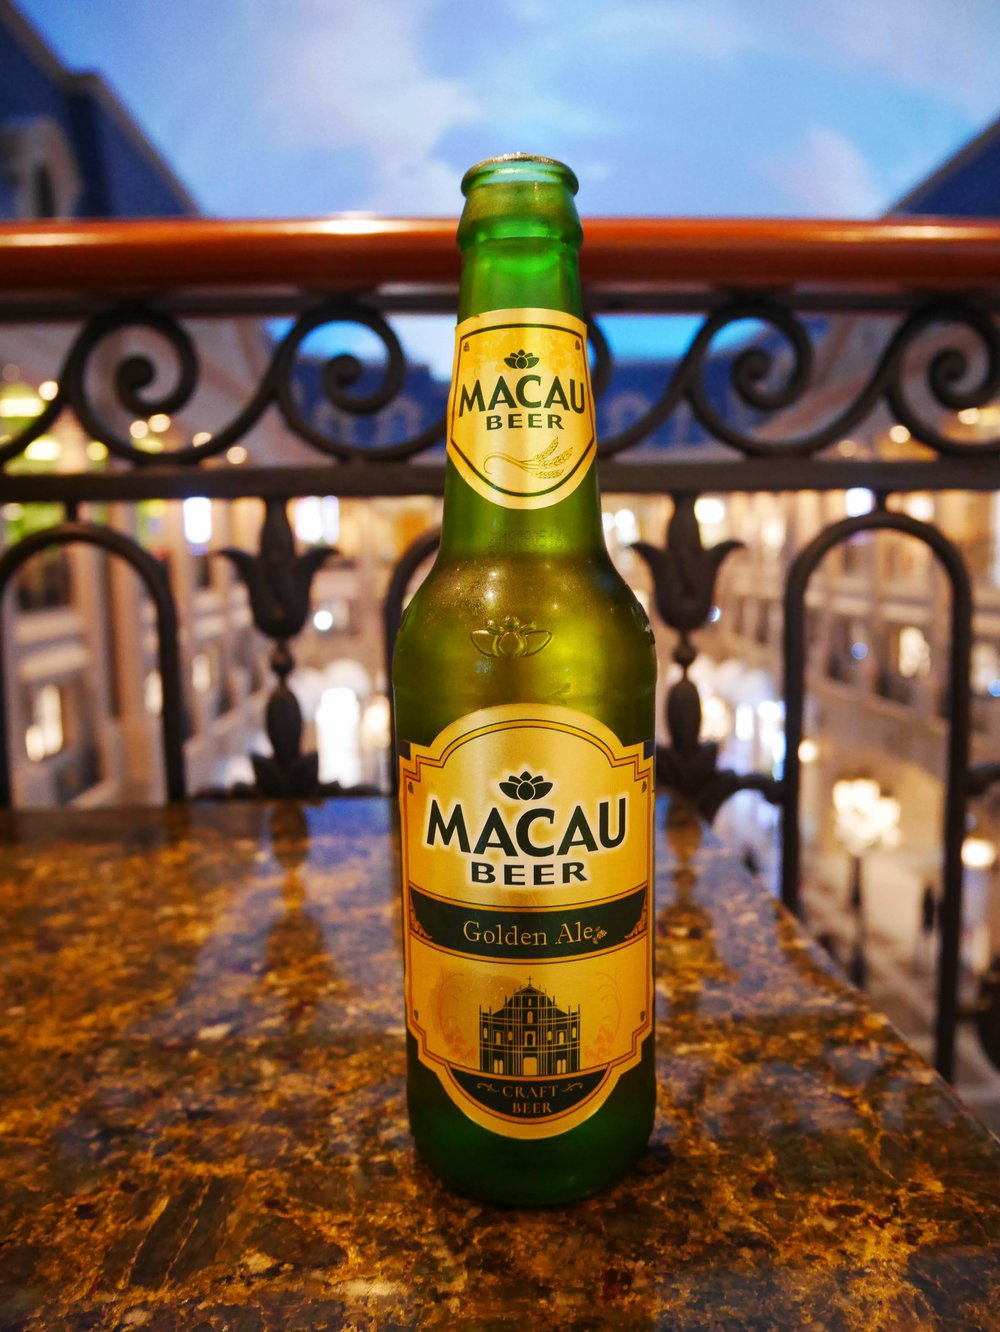 A bottle of Macau Beer Golden Ale